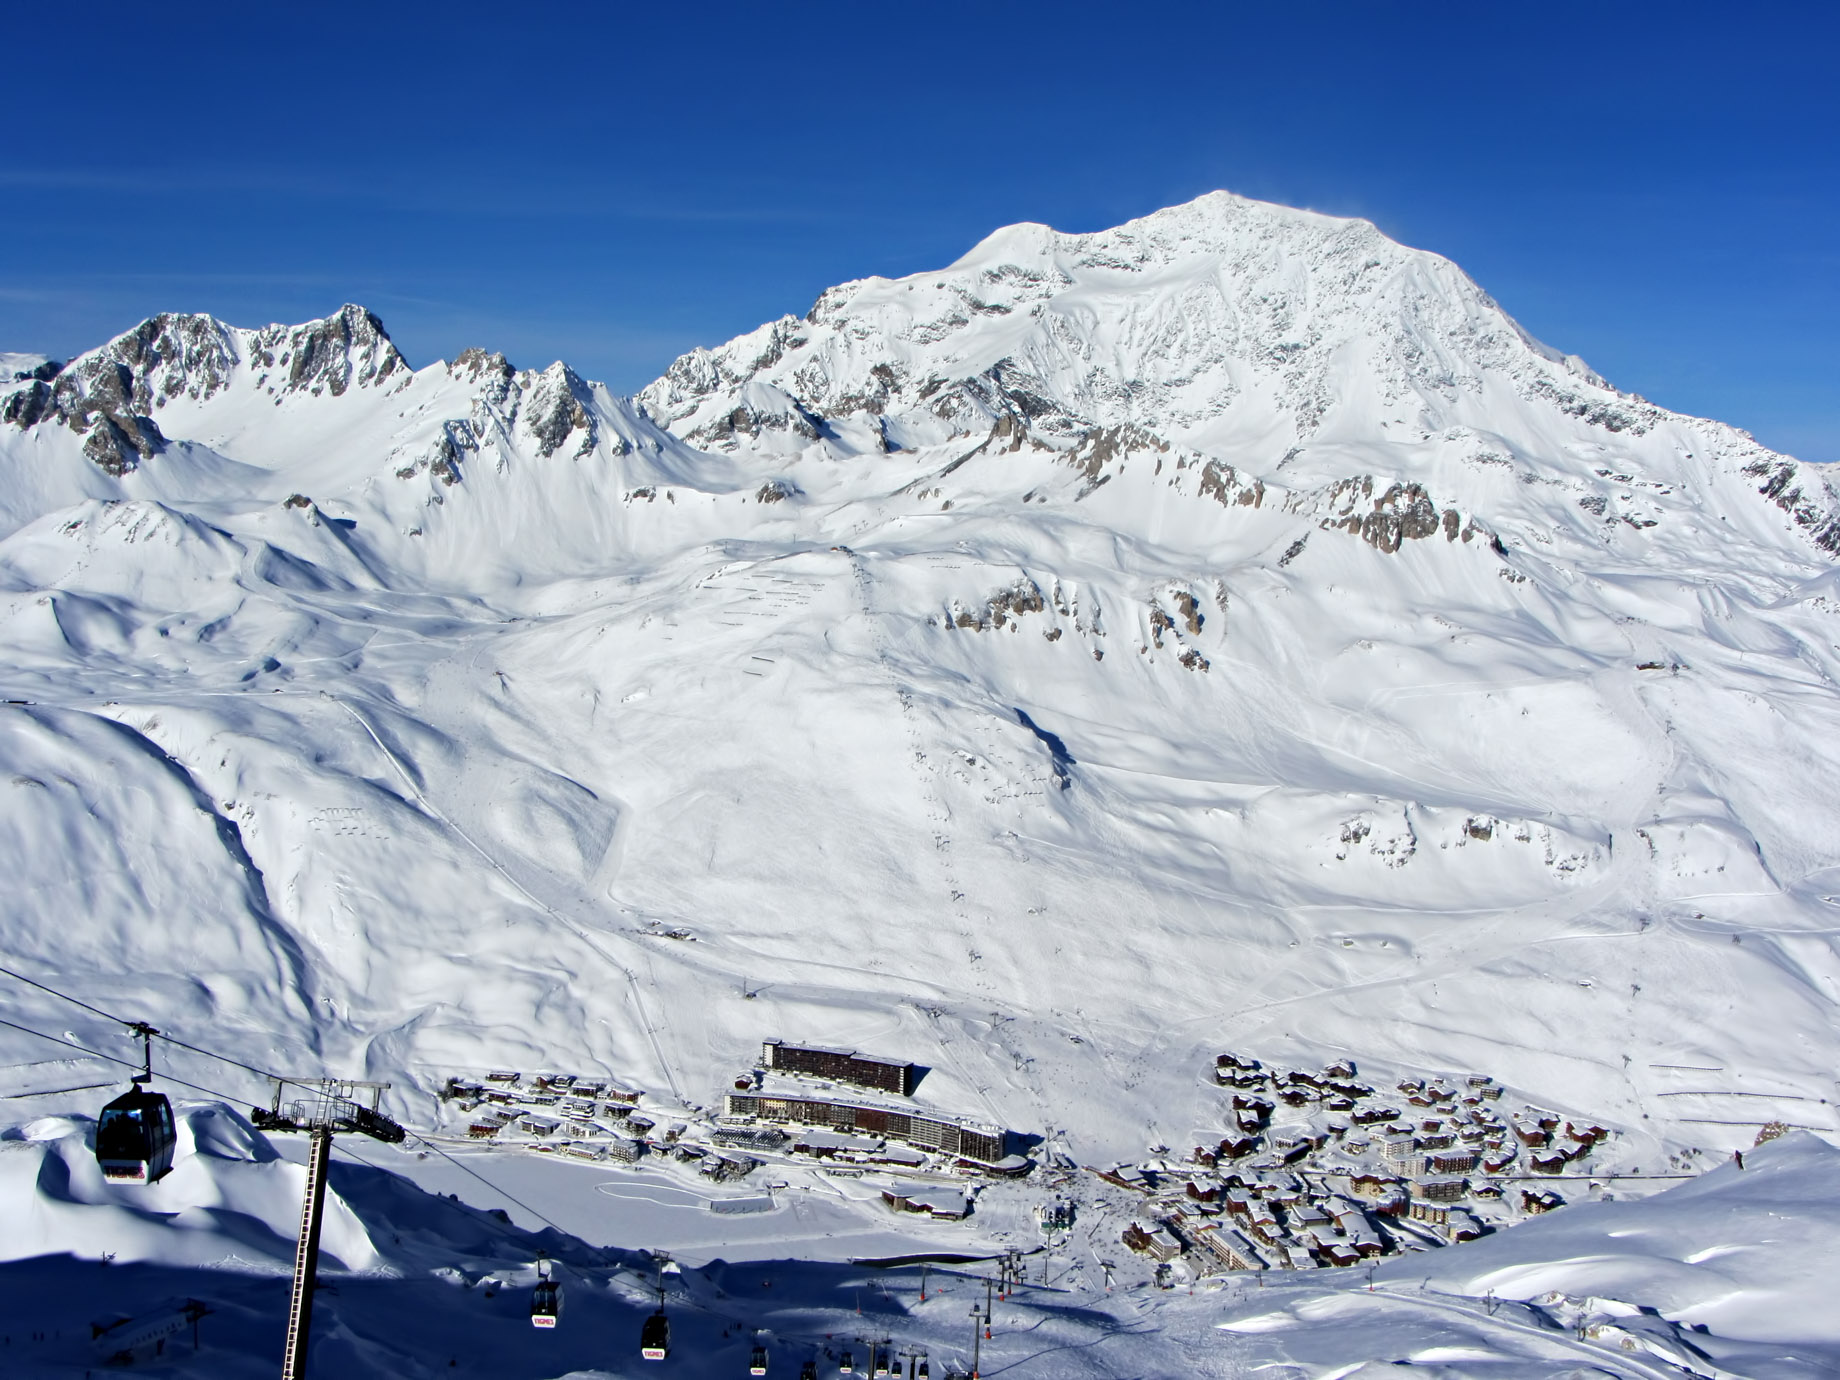 Tignes - French Alps Mountain Resort - An Exclusive Très Chic Luxury Winter Paradise